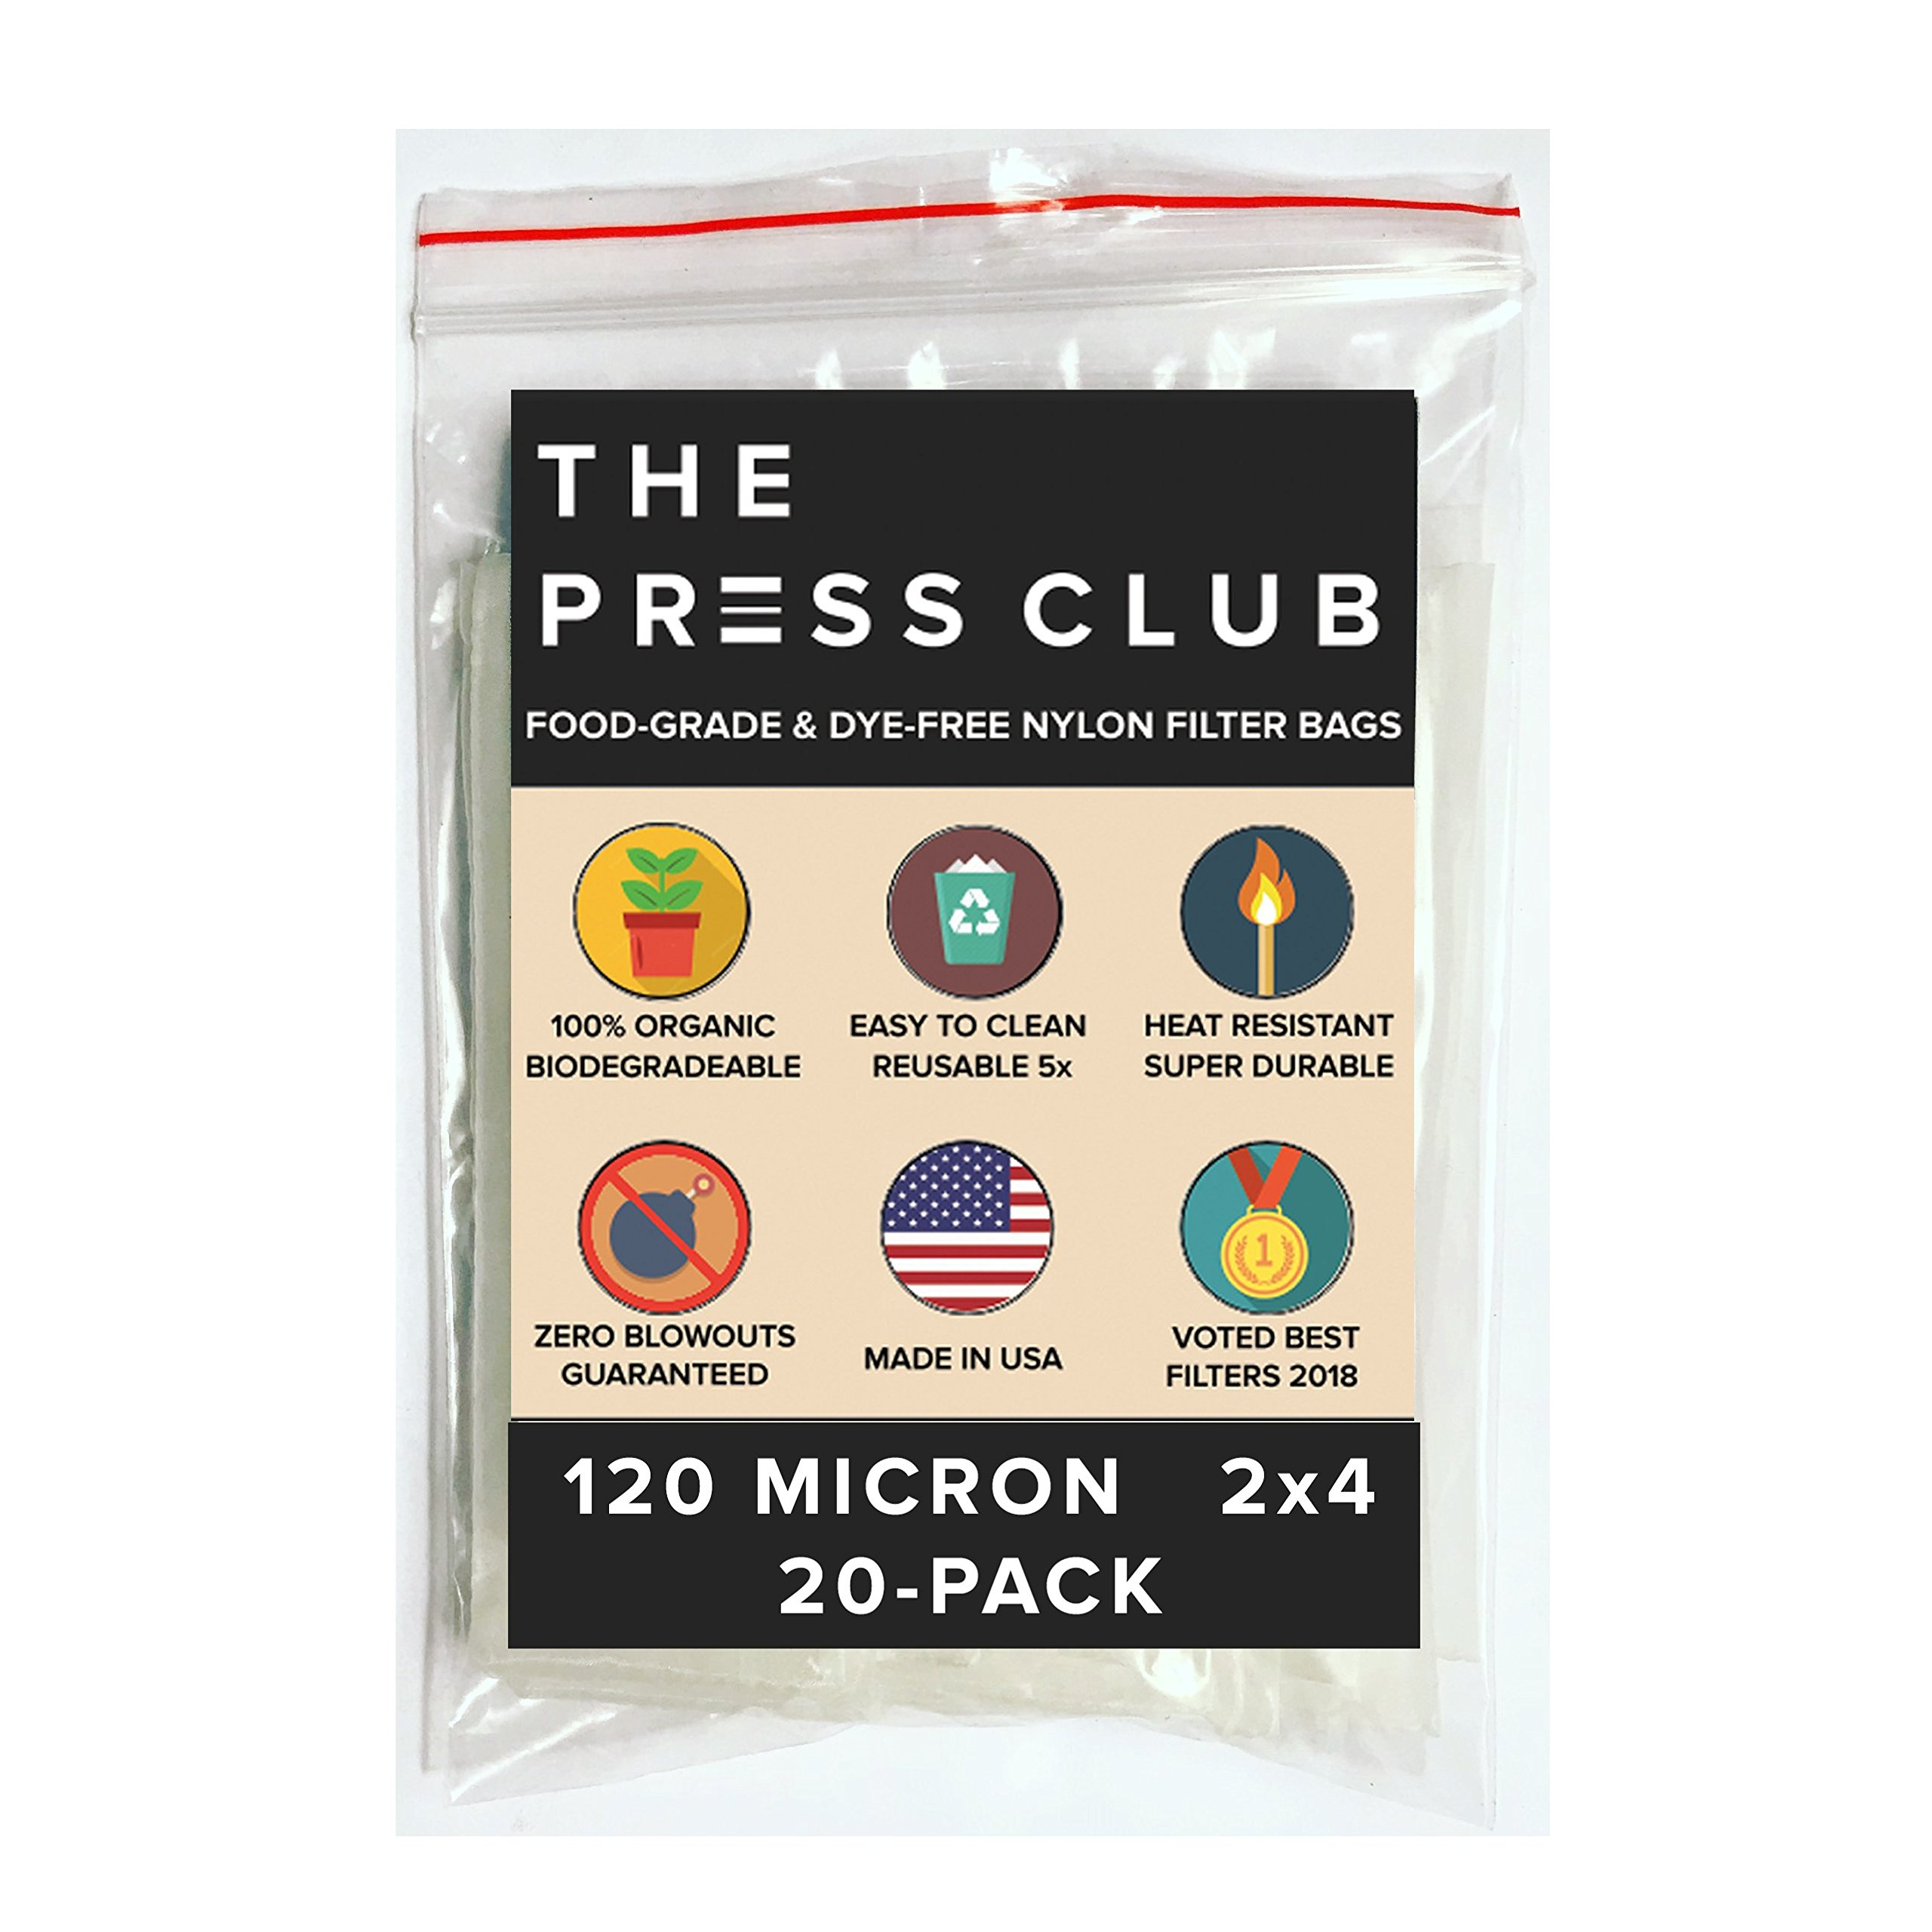 120 Micron | Premium Nylon Tea Filter Press Screen Bags | 2'' x 4'' | 20 Pack | Zero Blowout Guarantee | All Micron & Sizes Available by The Press Club